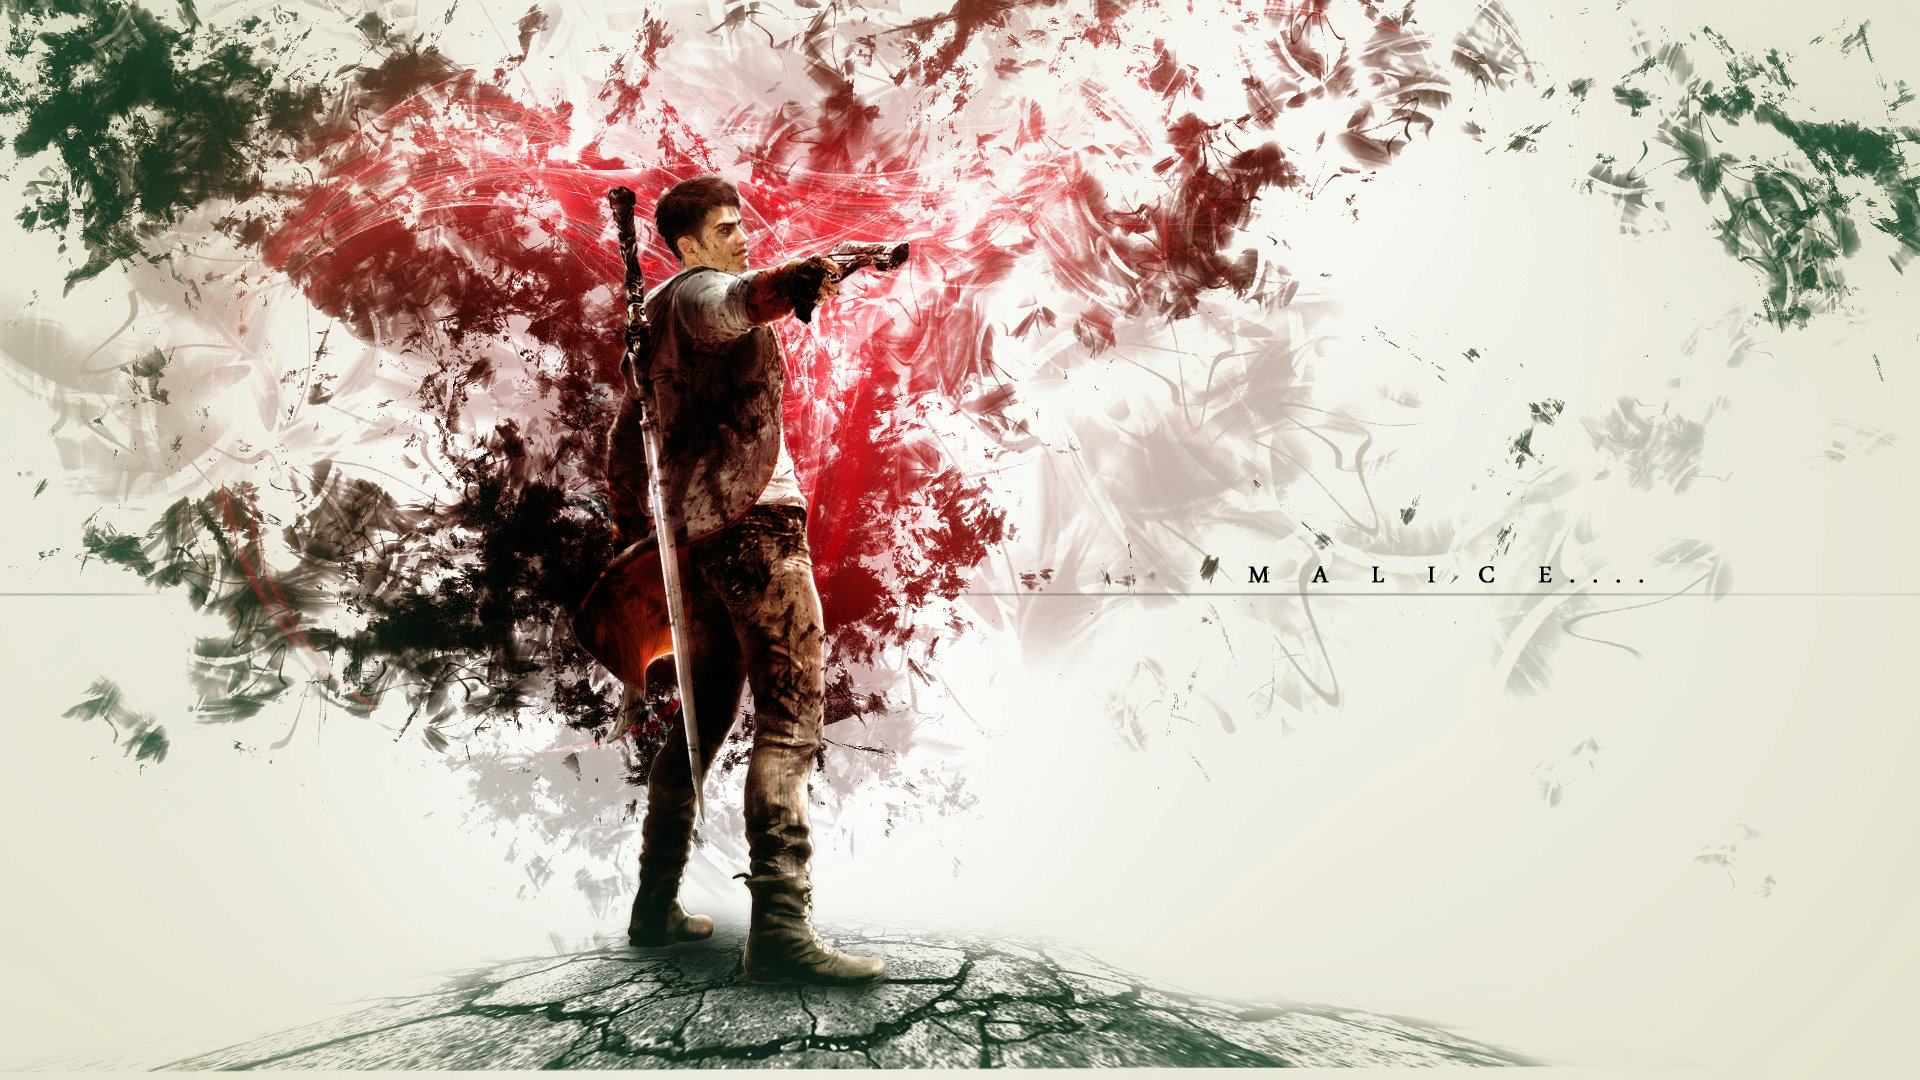 Devil may cry dmc n wallpaper 1920x1080 91732 wallpaperup voltagebd Images